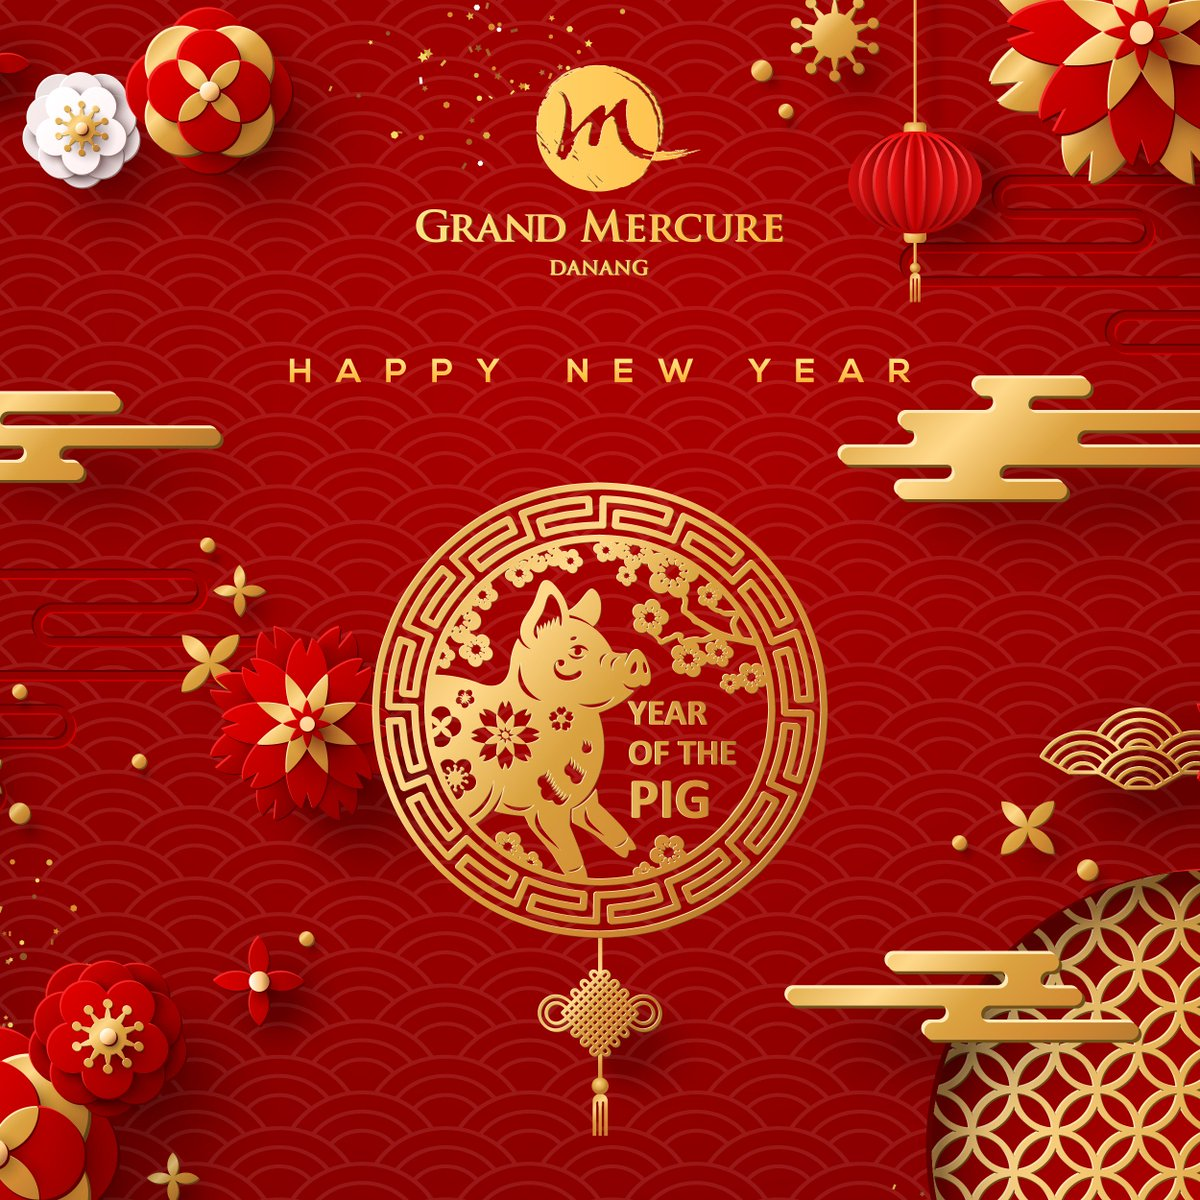 Happy Lunar New Year! #Grand Mercure Danang would like to thank all our dear guests and partners for an exciting #YearofthePig. We are wishing all of our guests a very happy #lunarnewyear and we hope that #YearofthePig2019 brings you happiness and good times. https://t.co/ViGSOmTyOm